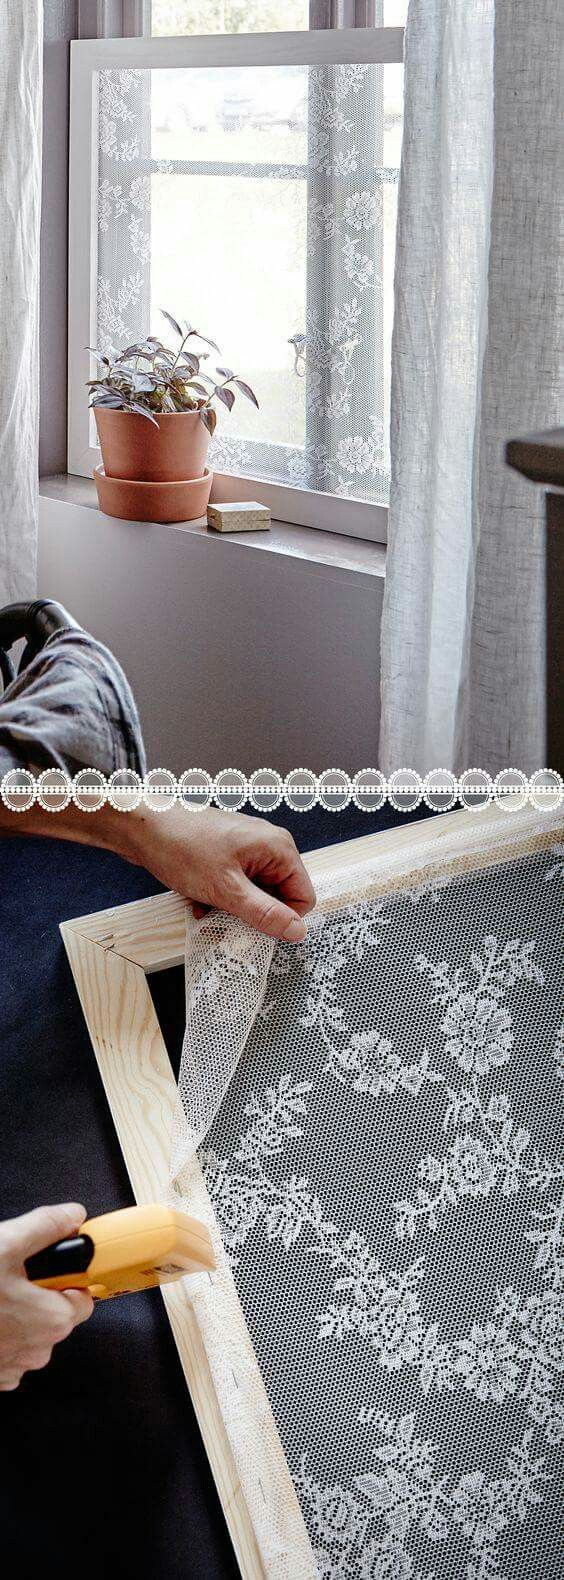 Make Your Space Pretty and Keep Mosquitoes Out Using Lace Window Screens.